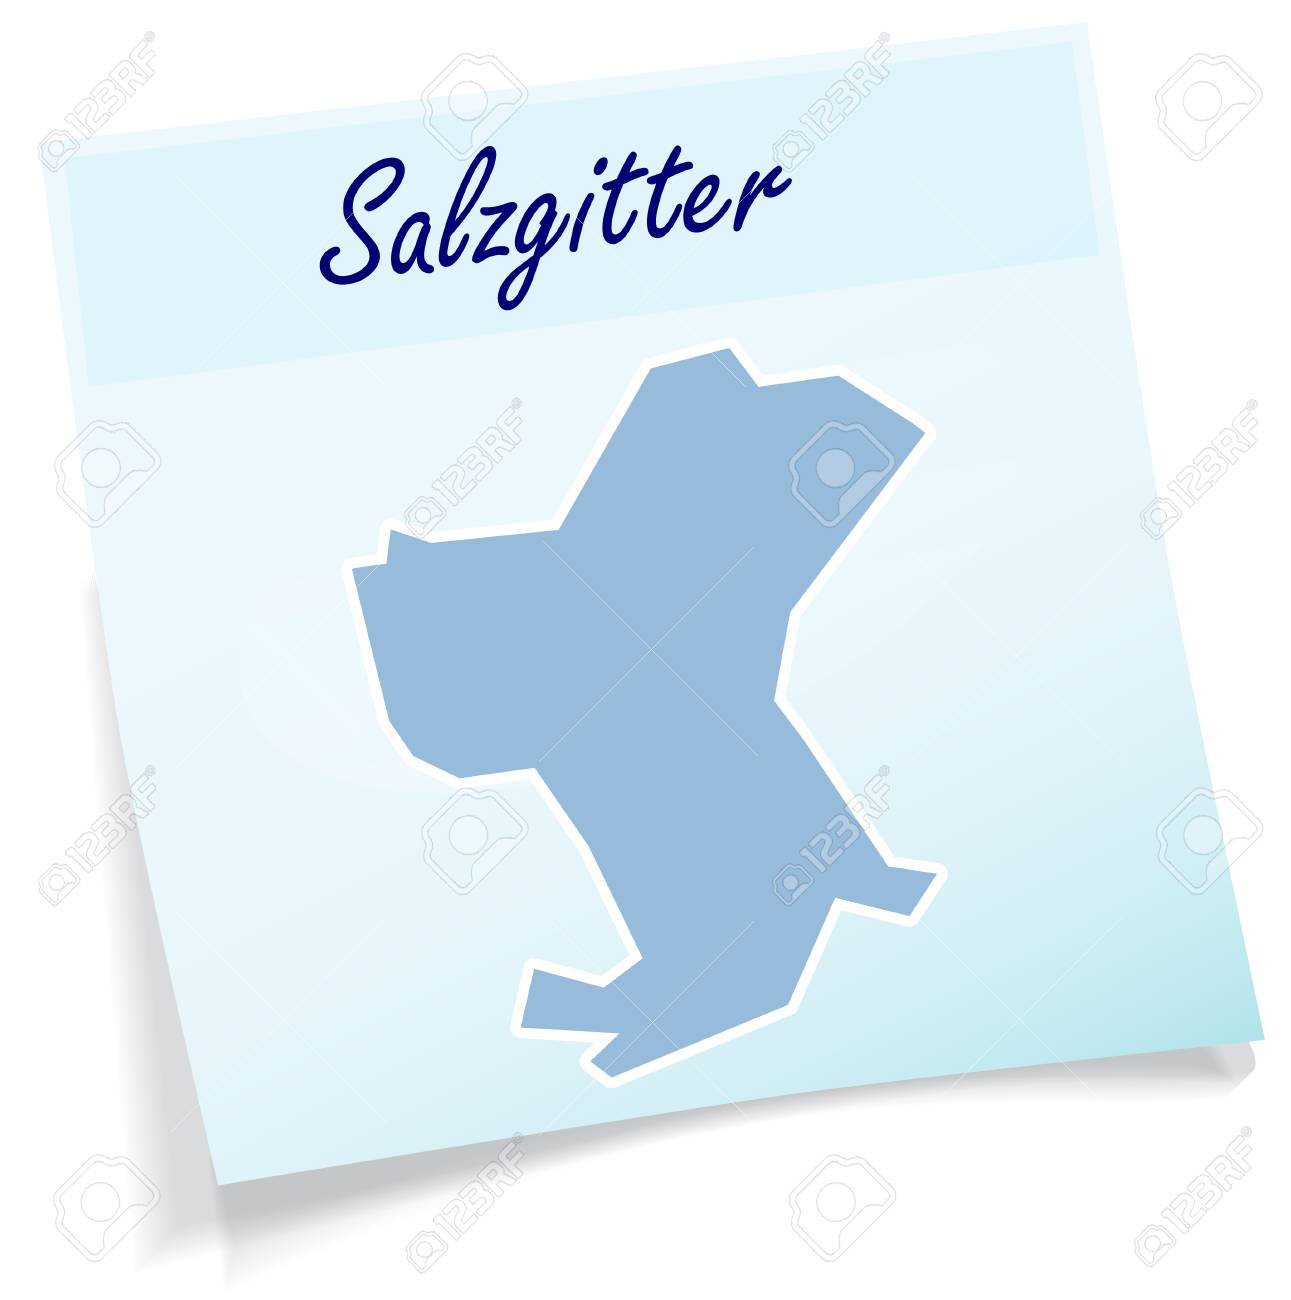 Map Of Salzgitter As Sticky Note In Blue Royalty Free Cliparts